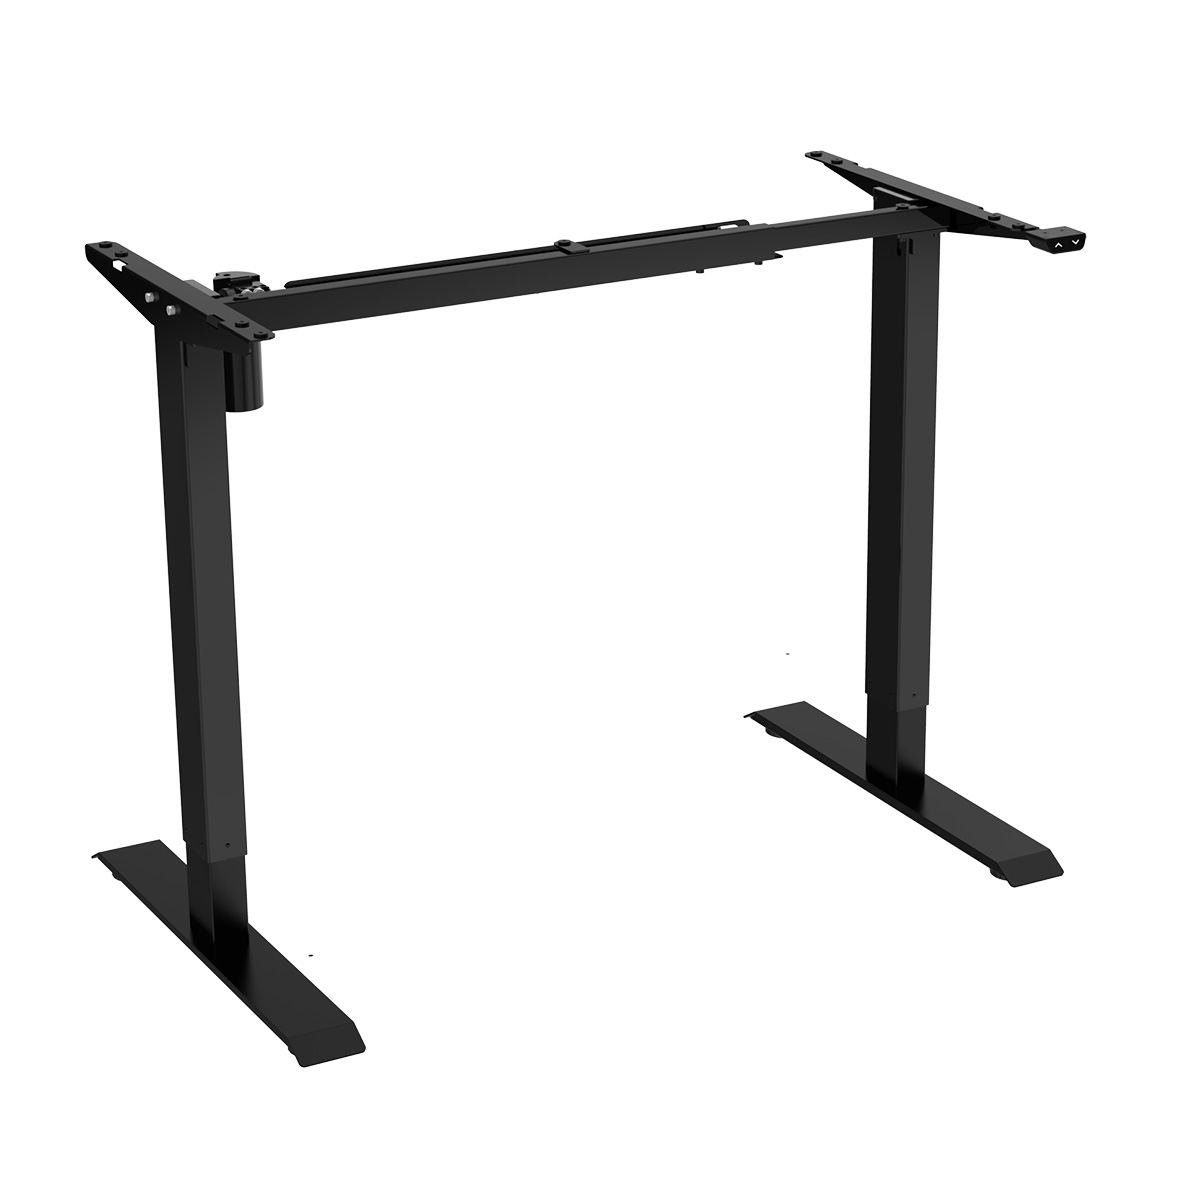 FS-DR48Mii Electric Height Adjustable Desk Frame Black